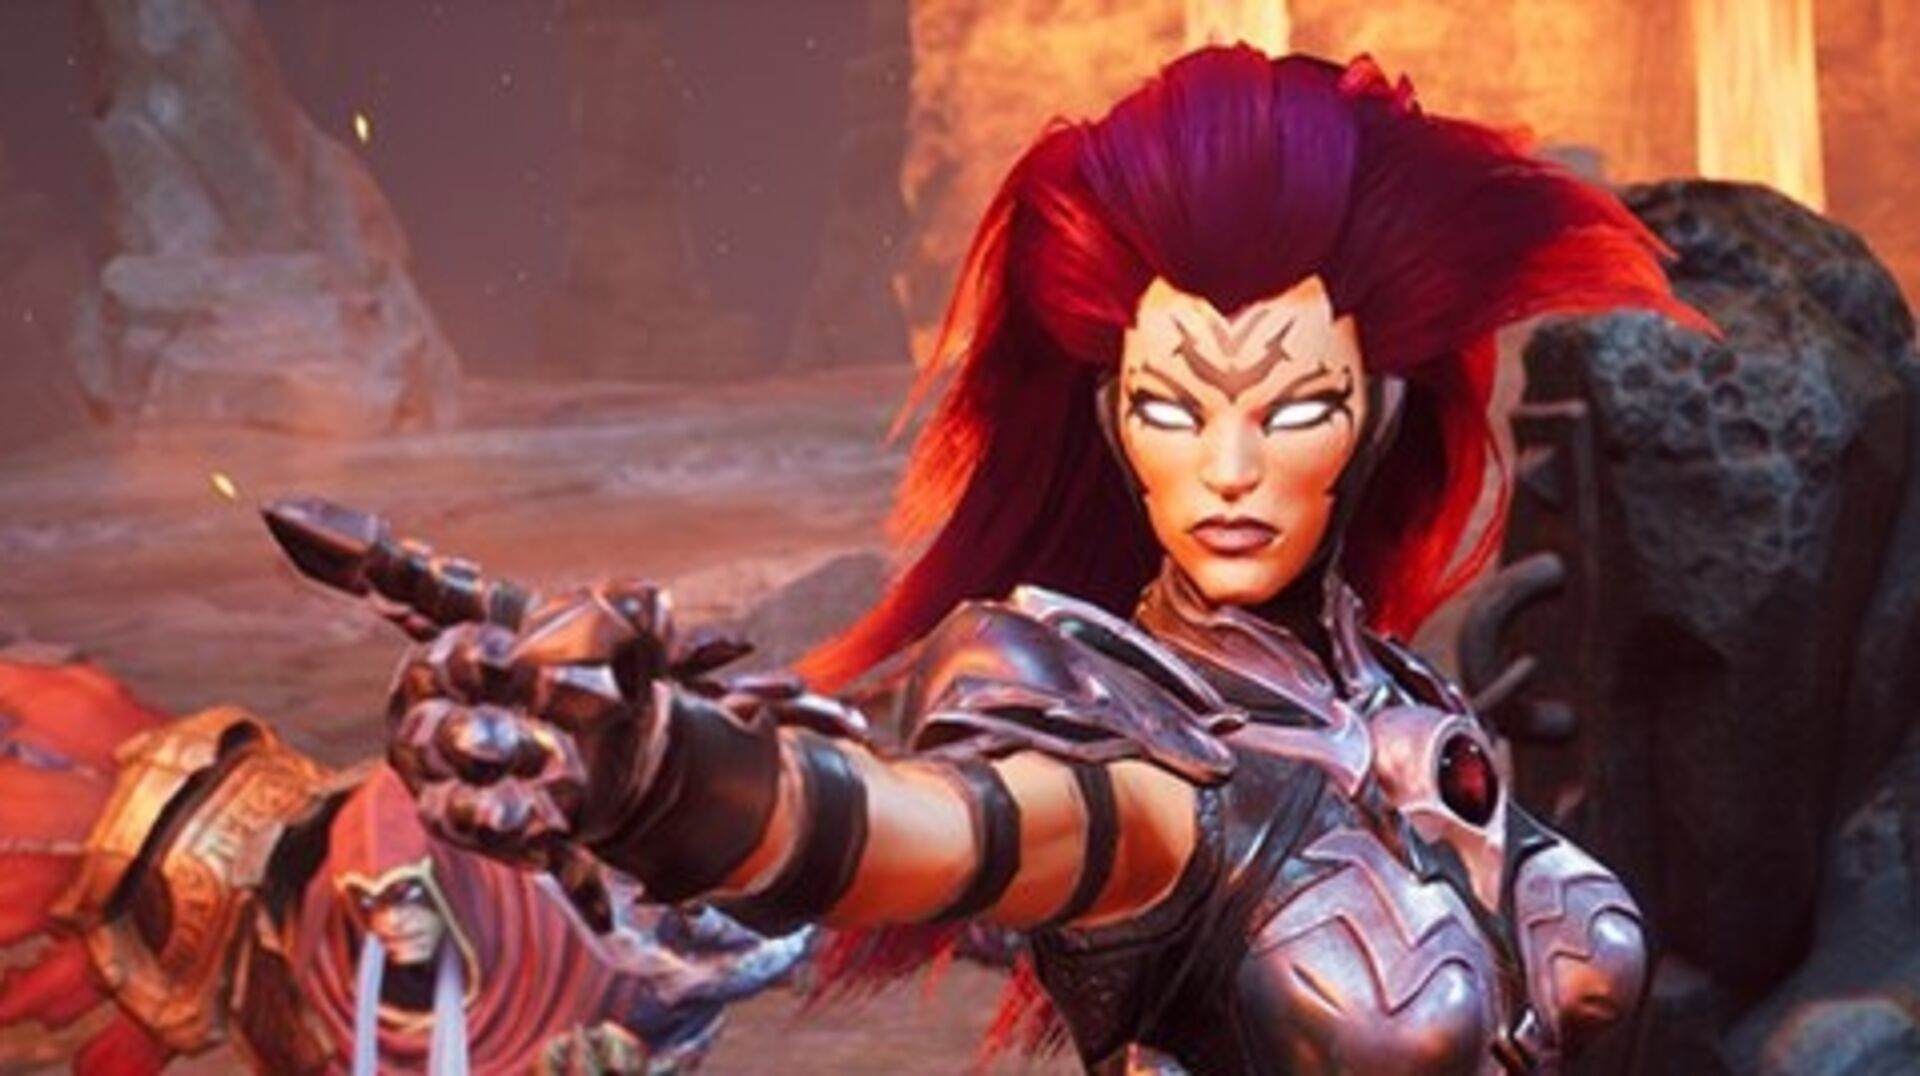 Darksiders 3 UK physical launch sales a quarter of Farming Simulator